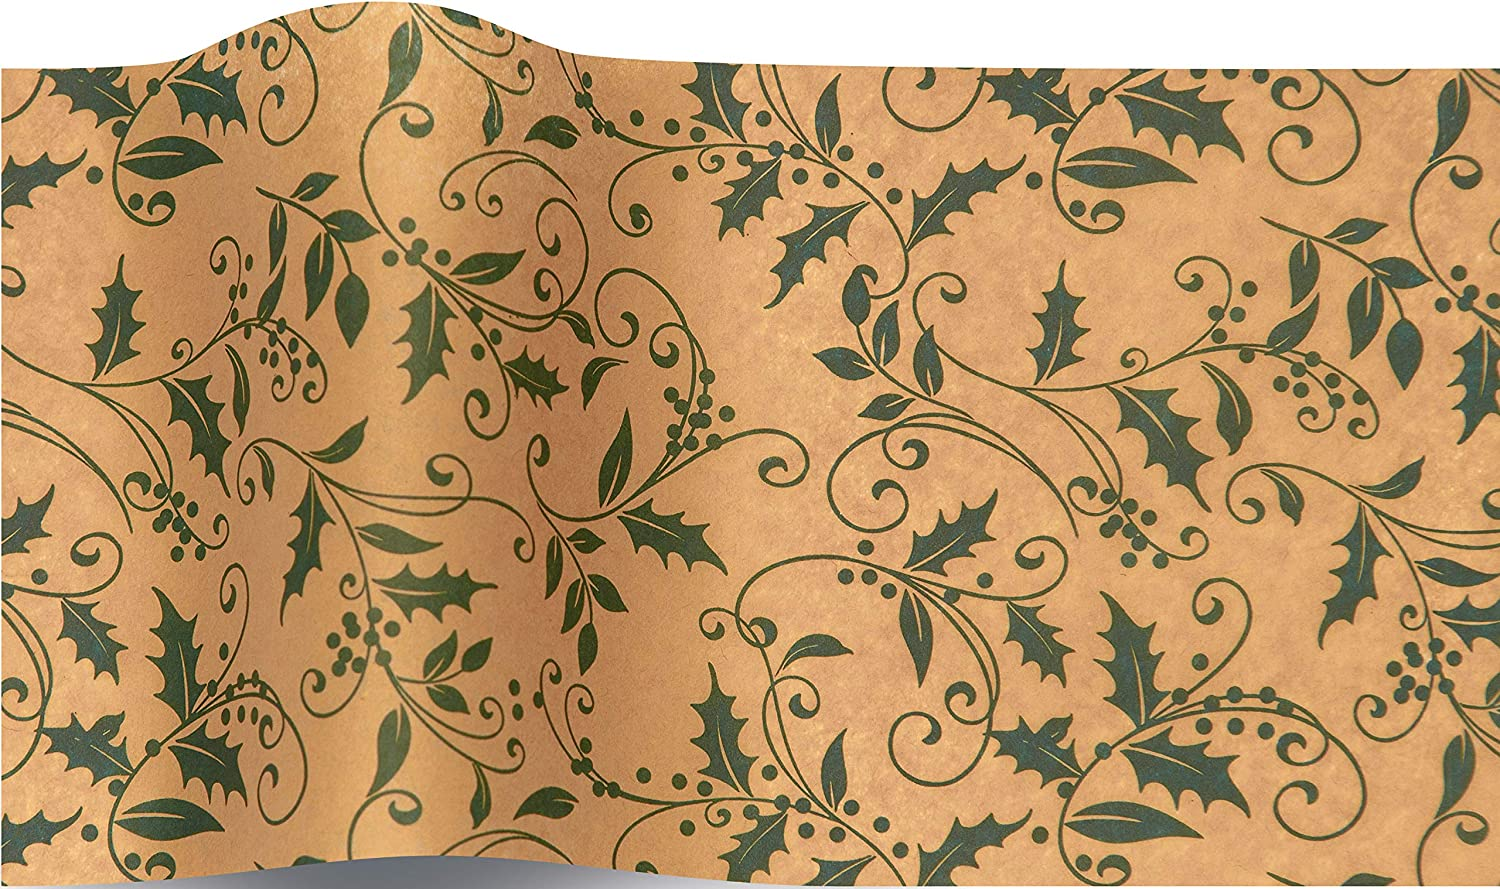 Vintage Christmas Tissue Wrapping Paper or Gift Wrap with Cornucopia Fruits Vegetables and Holly